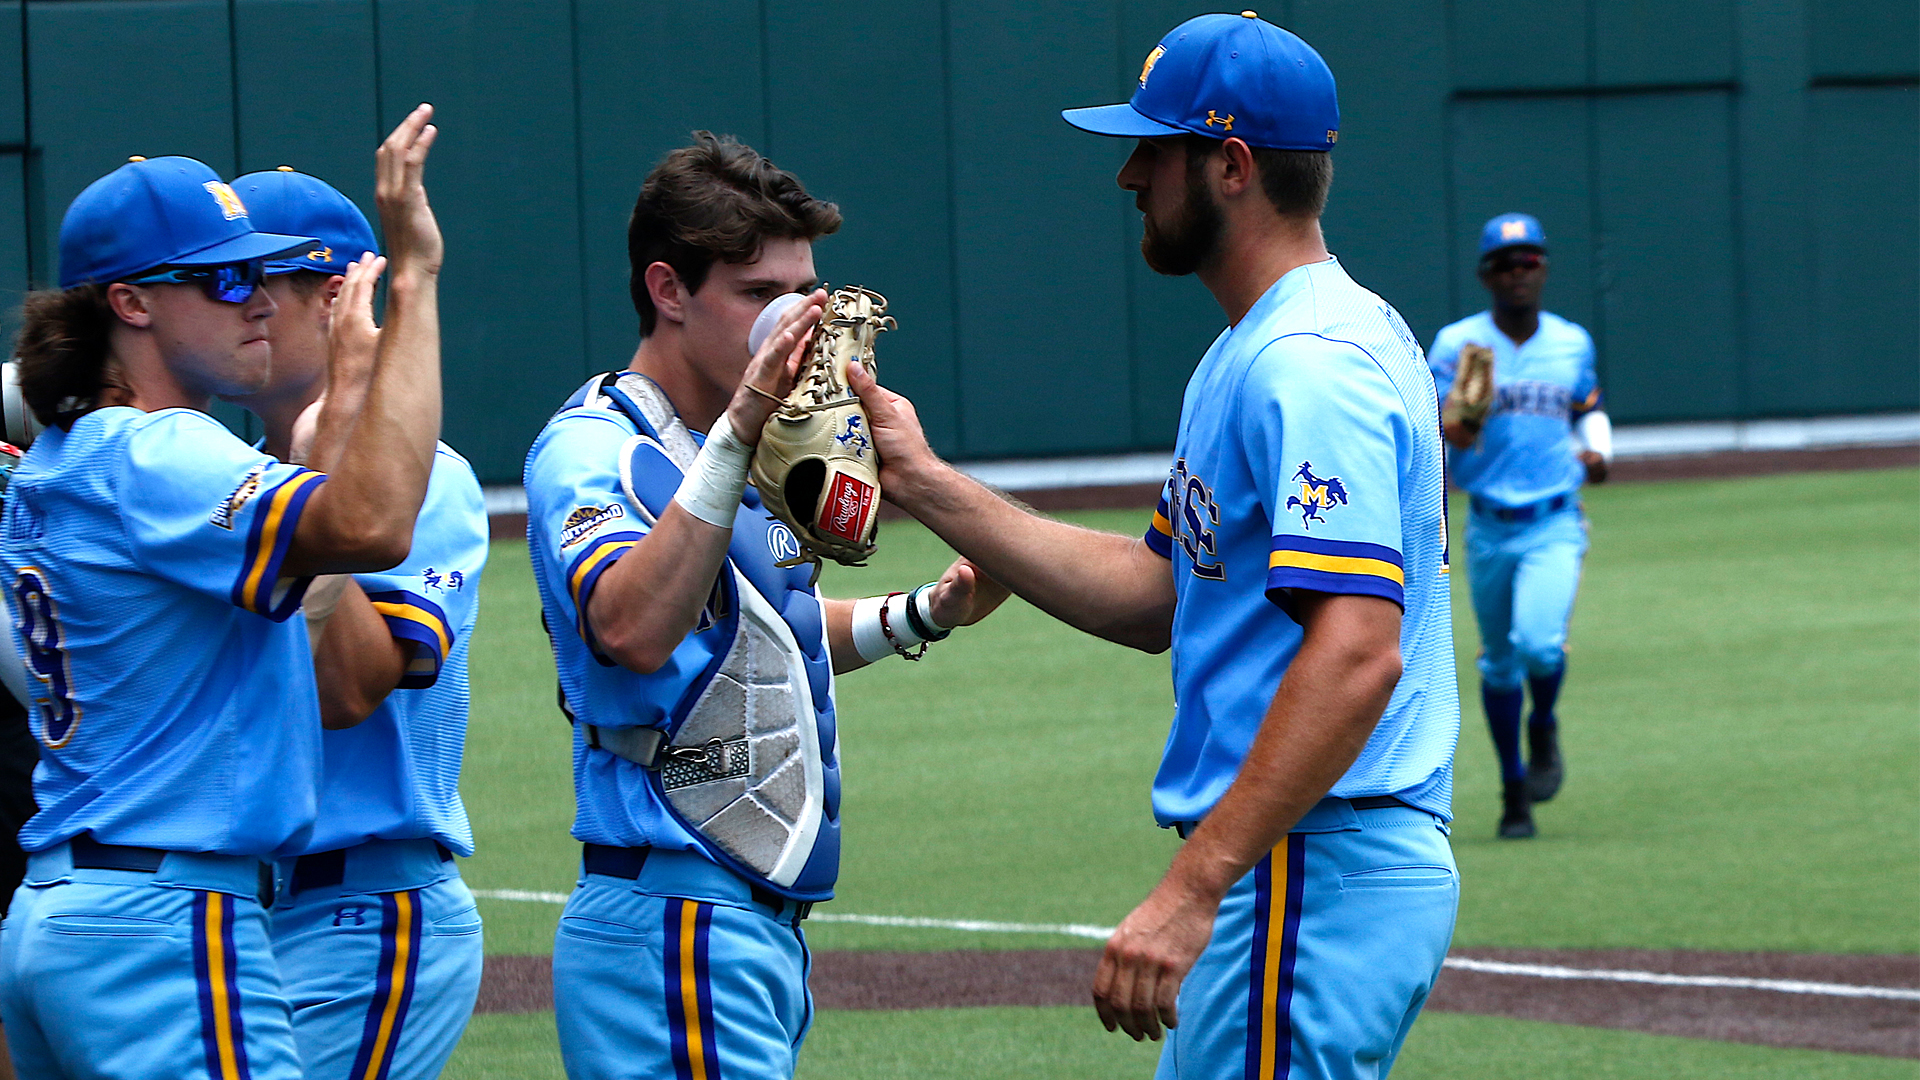 hot sale online b87a4 882c9 LAKE CHARLES – When McNeese starting pitcher Rhett Deaton walked off the  mound in the fifth inning against Ohio State at the NCAA Nashville Regional  back on ...